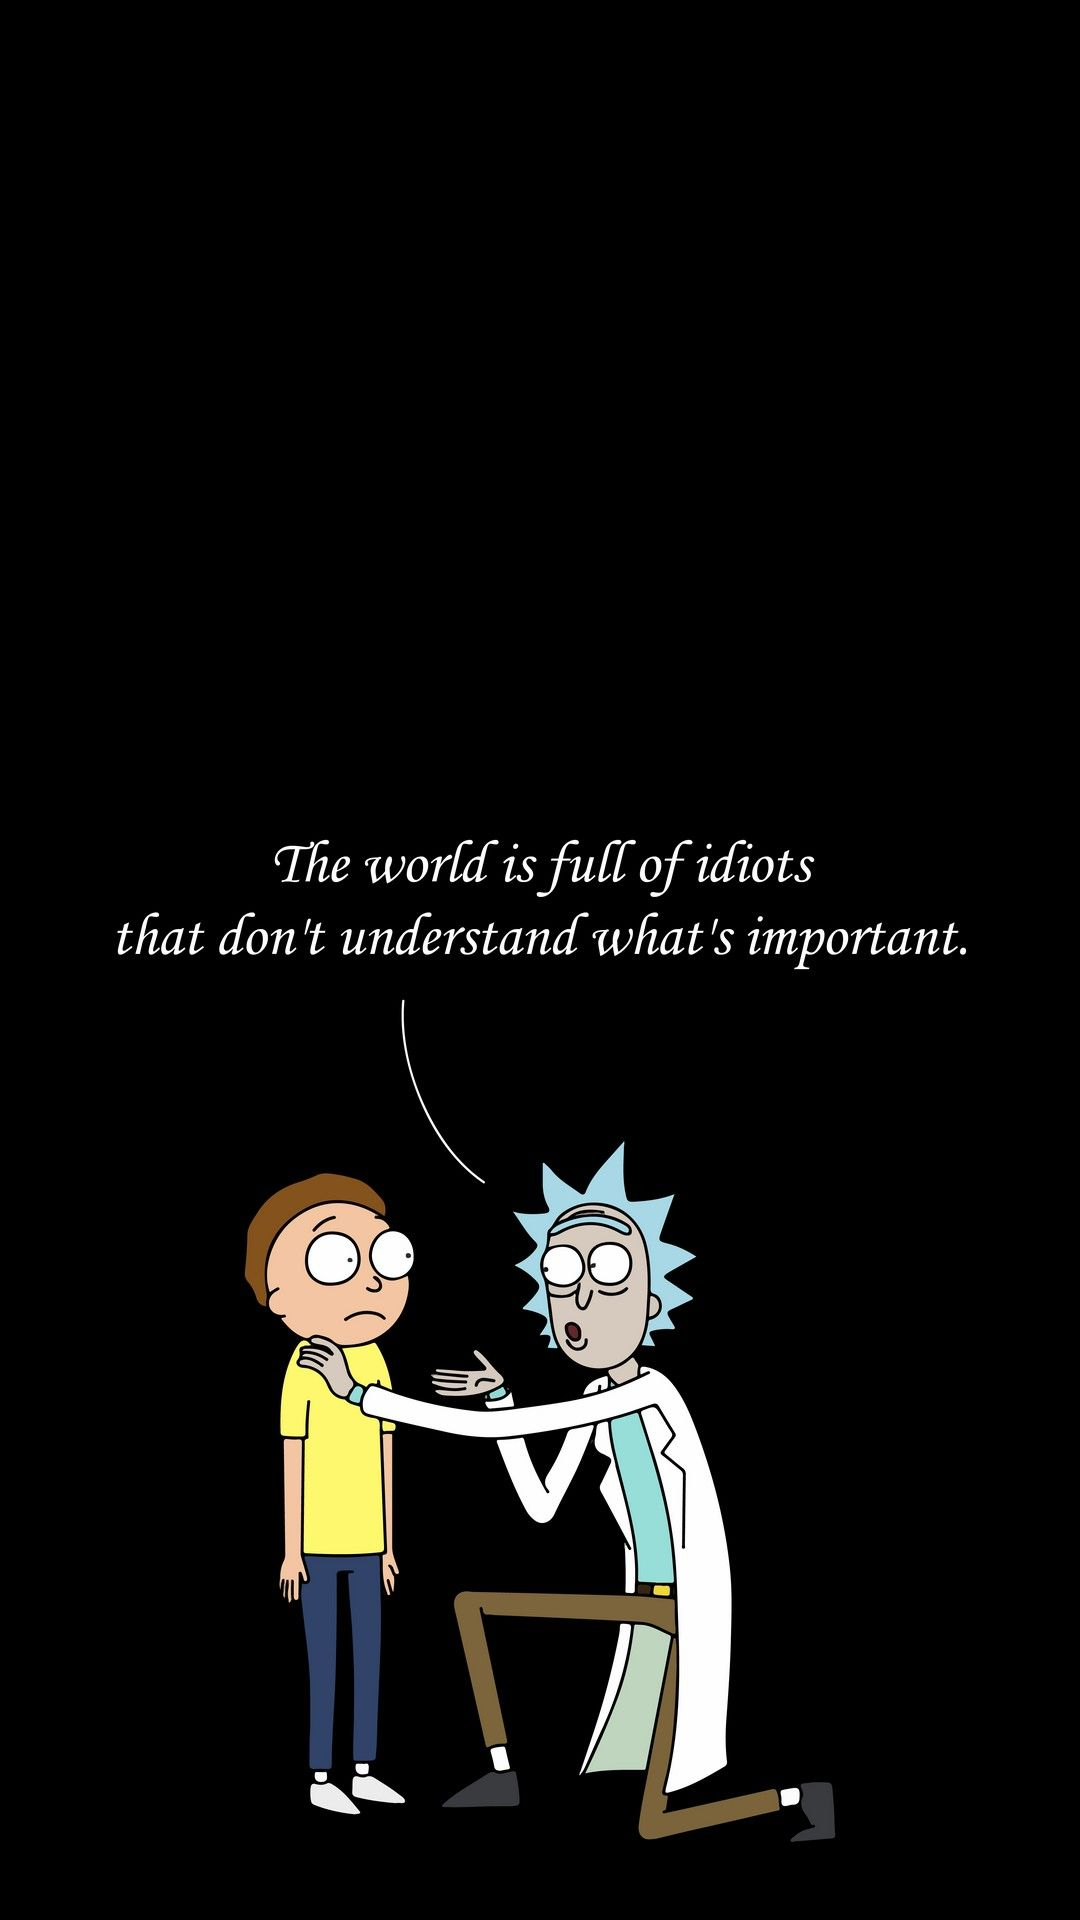 Quotes Wallpaper Rick And Morty Iphone Rick Morty Poster